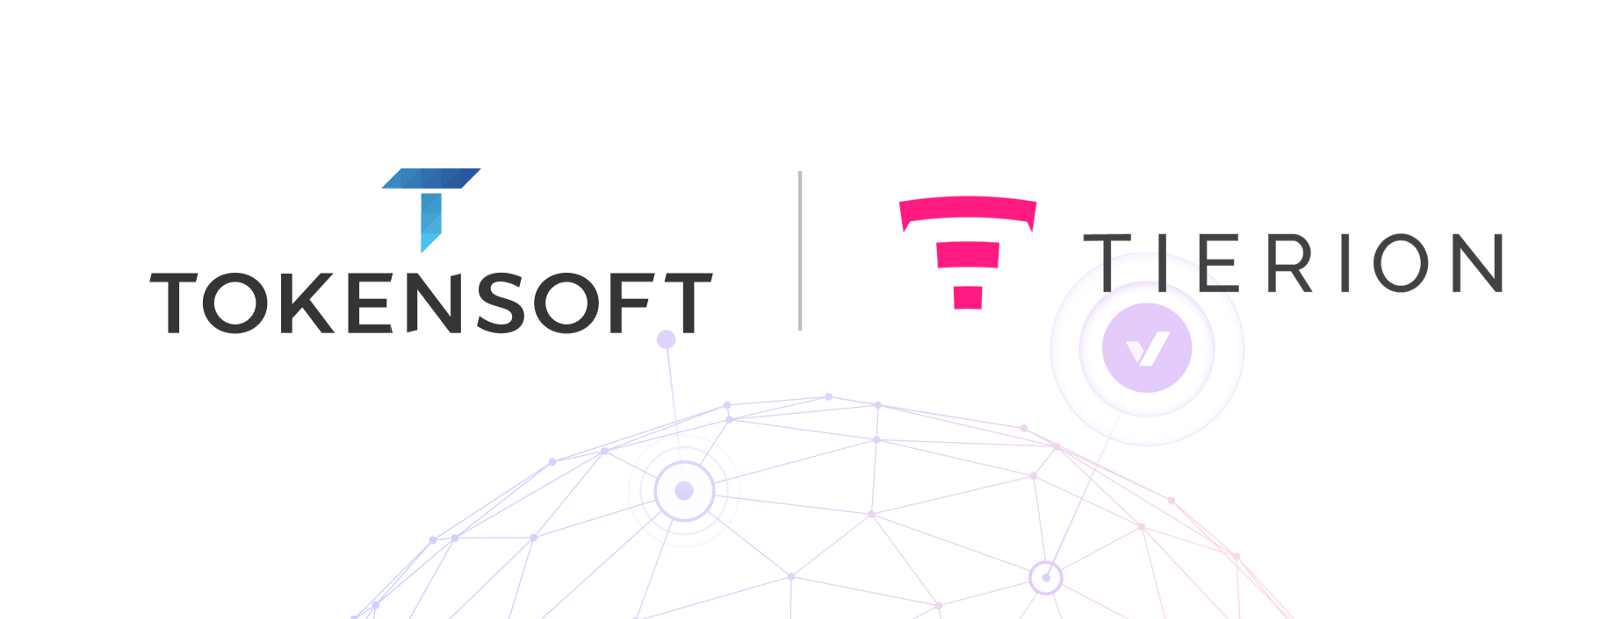 TokenSoft Uses Chainpoint To Enhance Digital Signature Technology